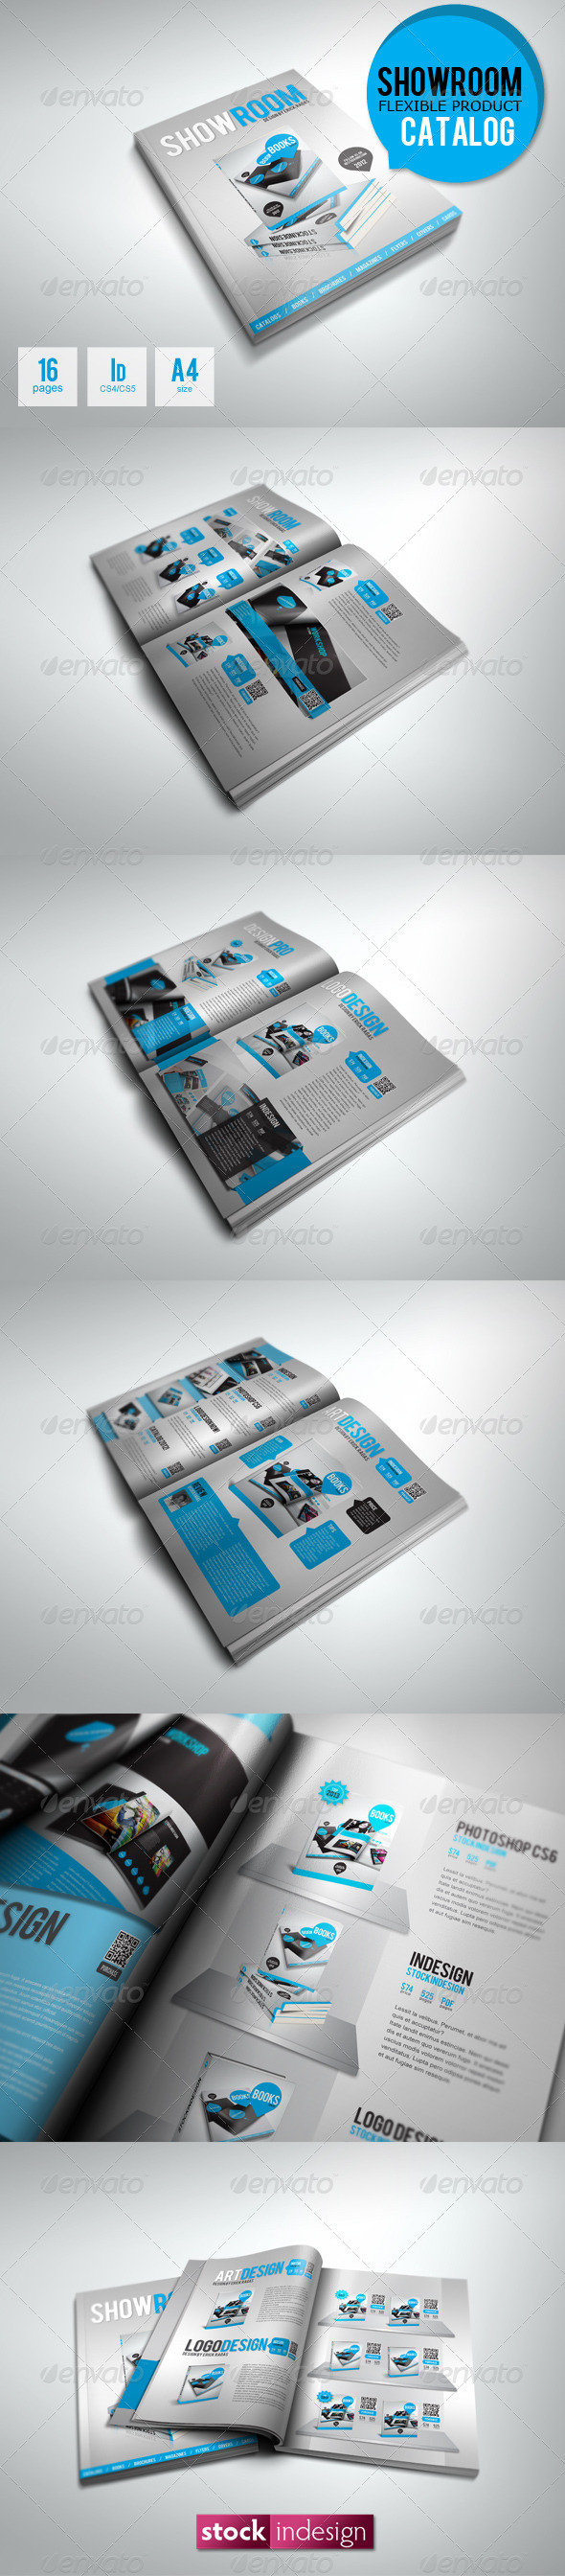 ShowRoom Product Catalog - Unlimited Colors - Corporate Brochures